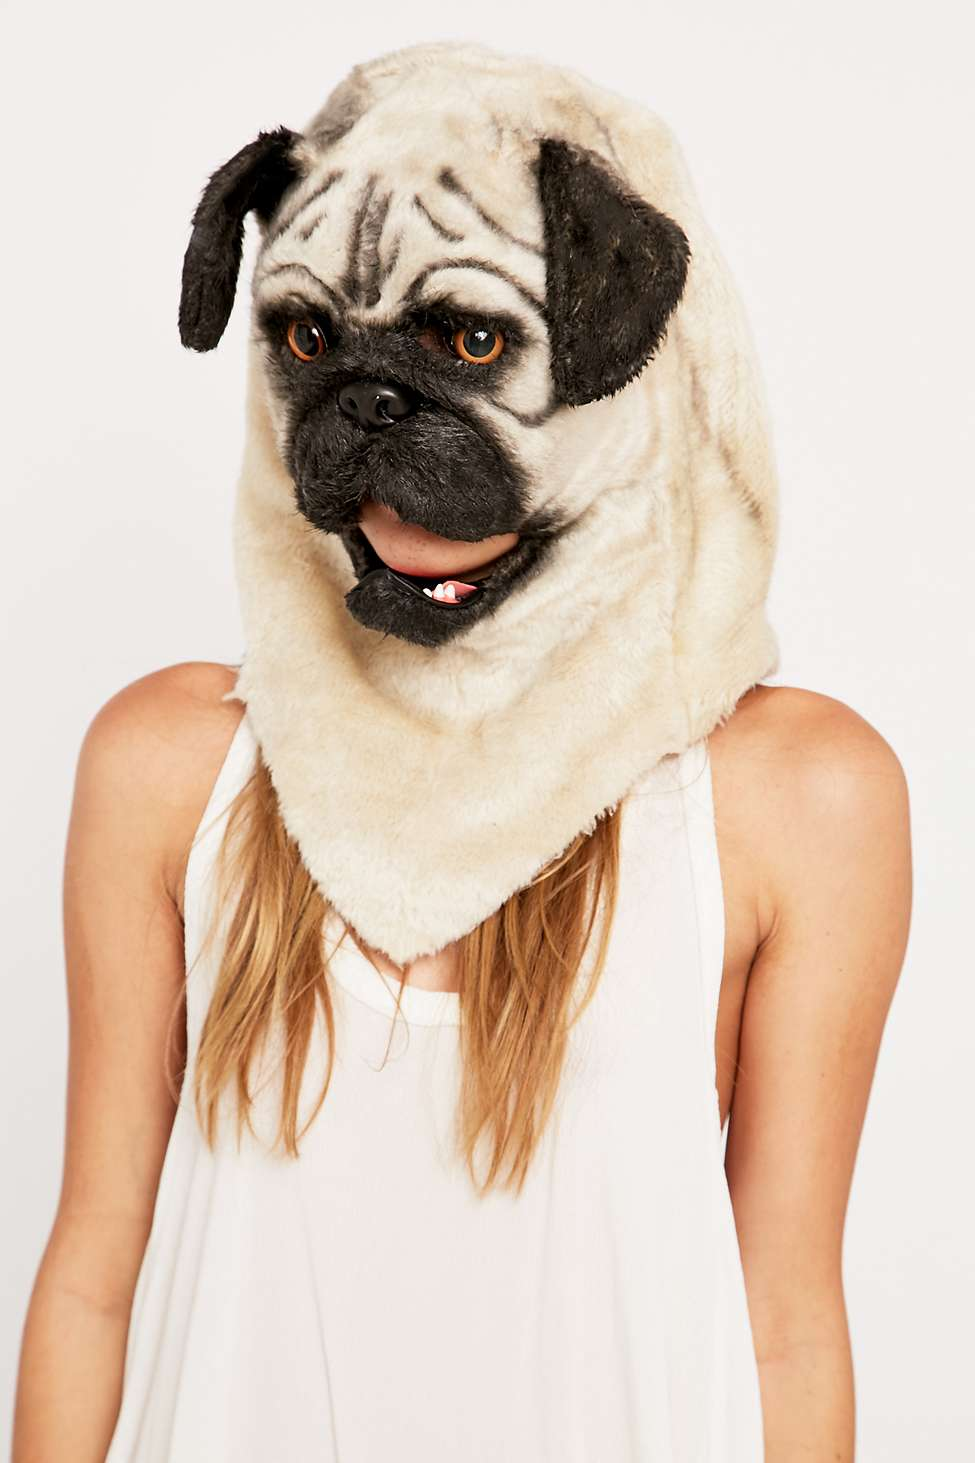 Pug Head Unique And Quirky Gift Ideas Any Odd Person Will Appreciate (Fun Gifts!)